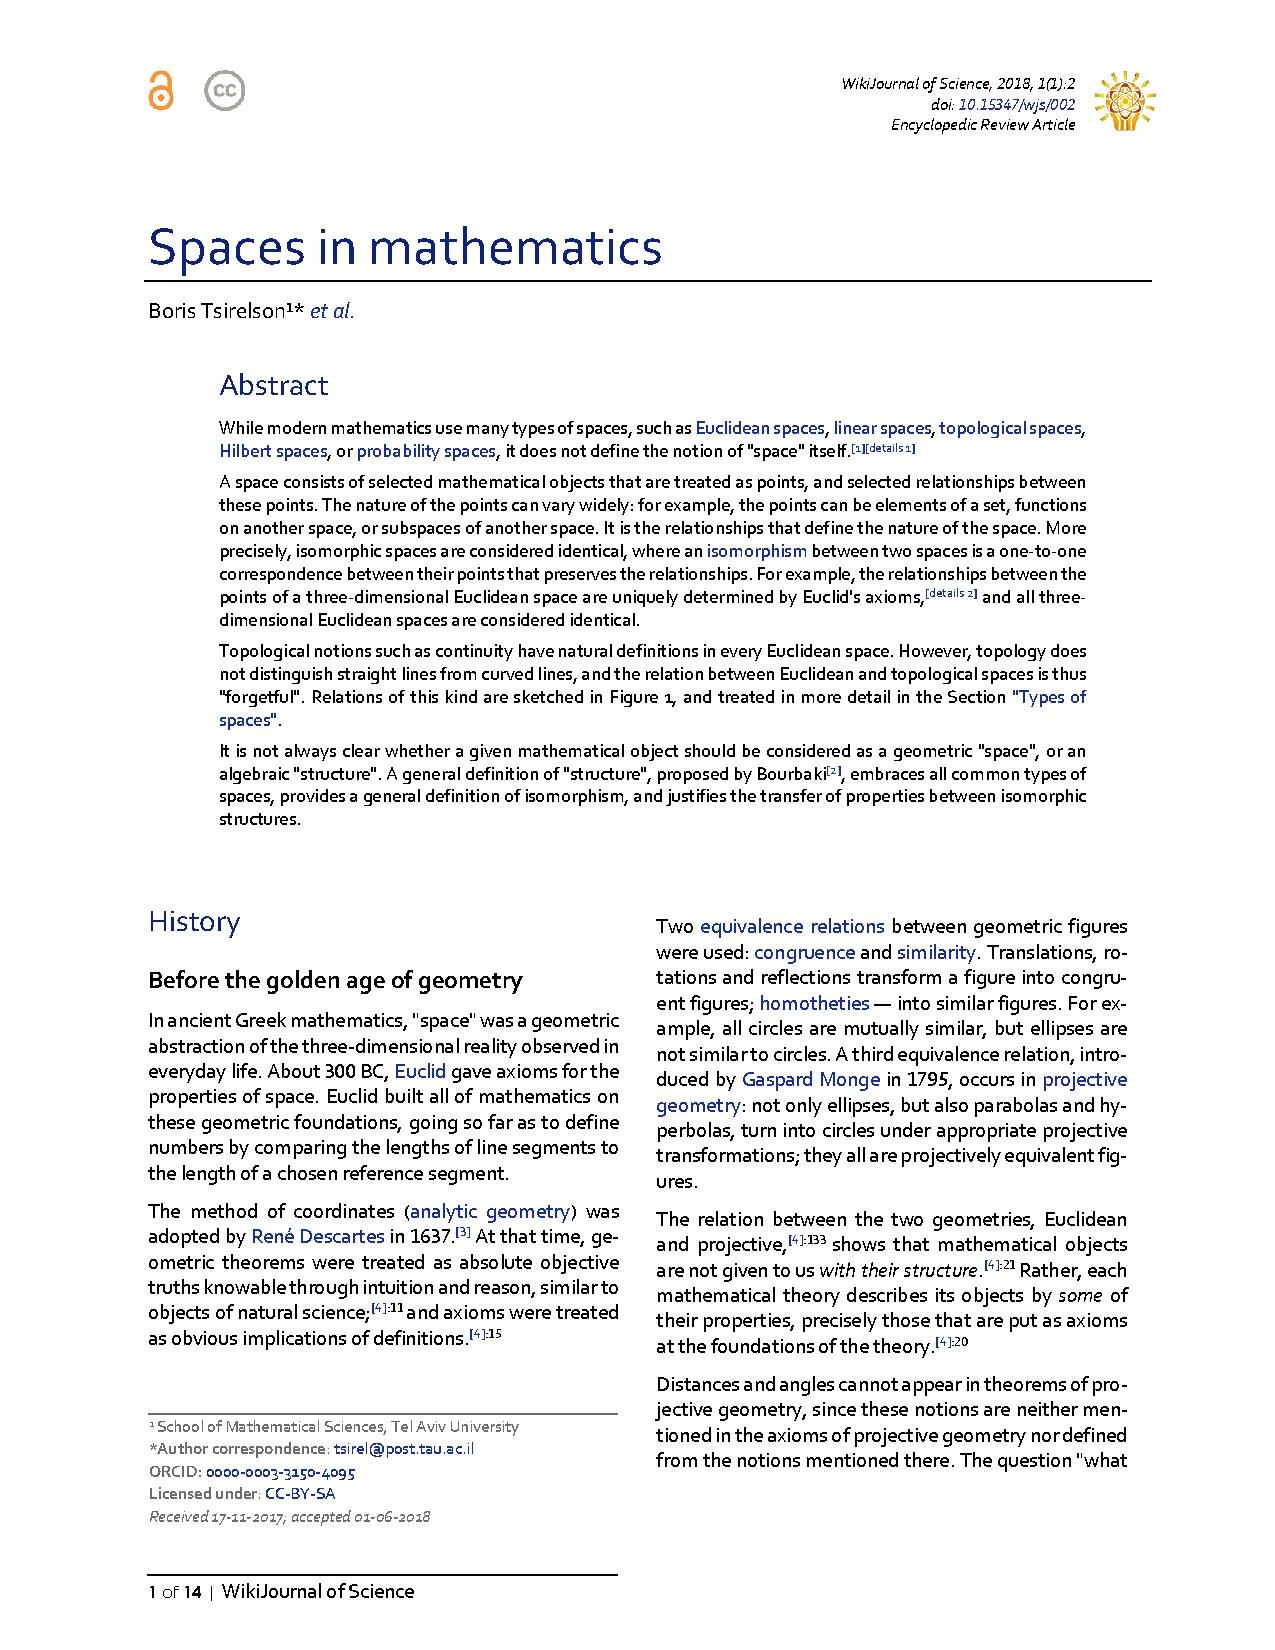 File:Spaces in mathematics pdf - Wikiversity